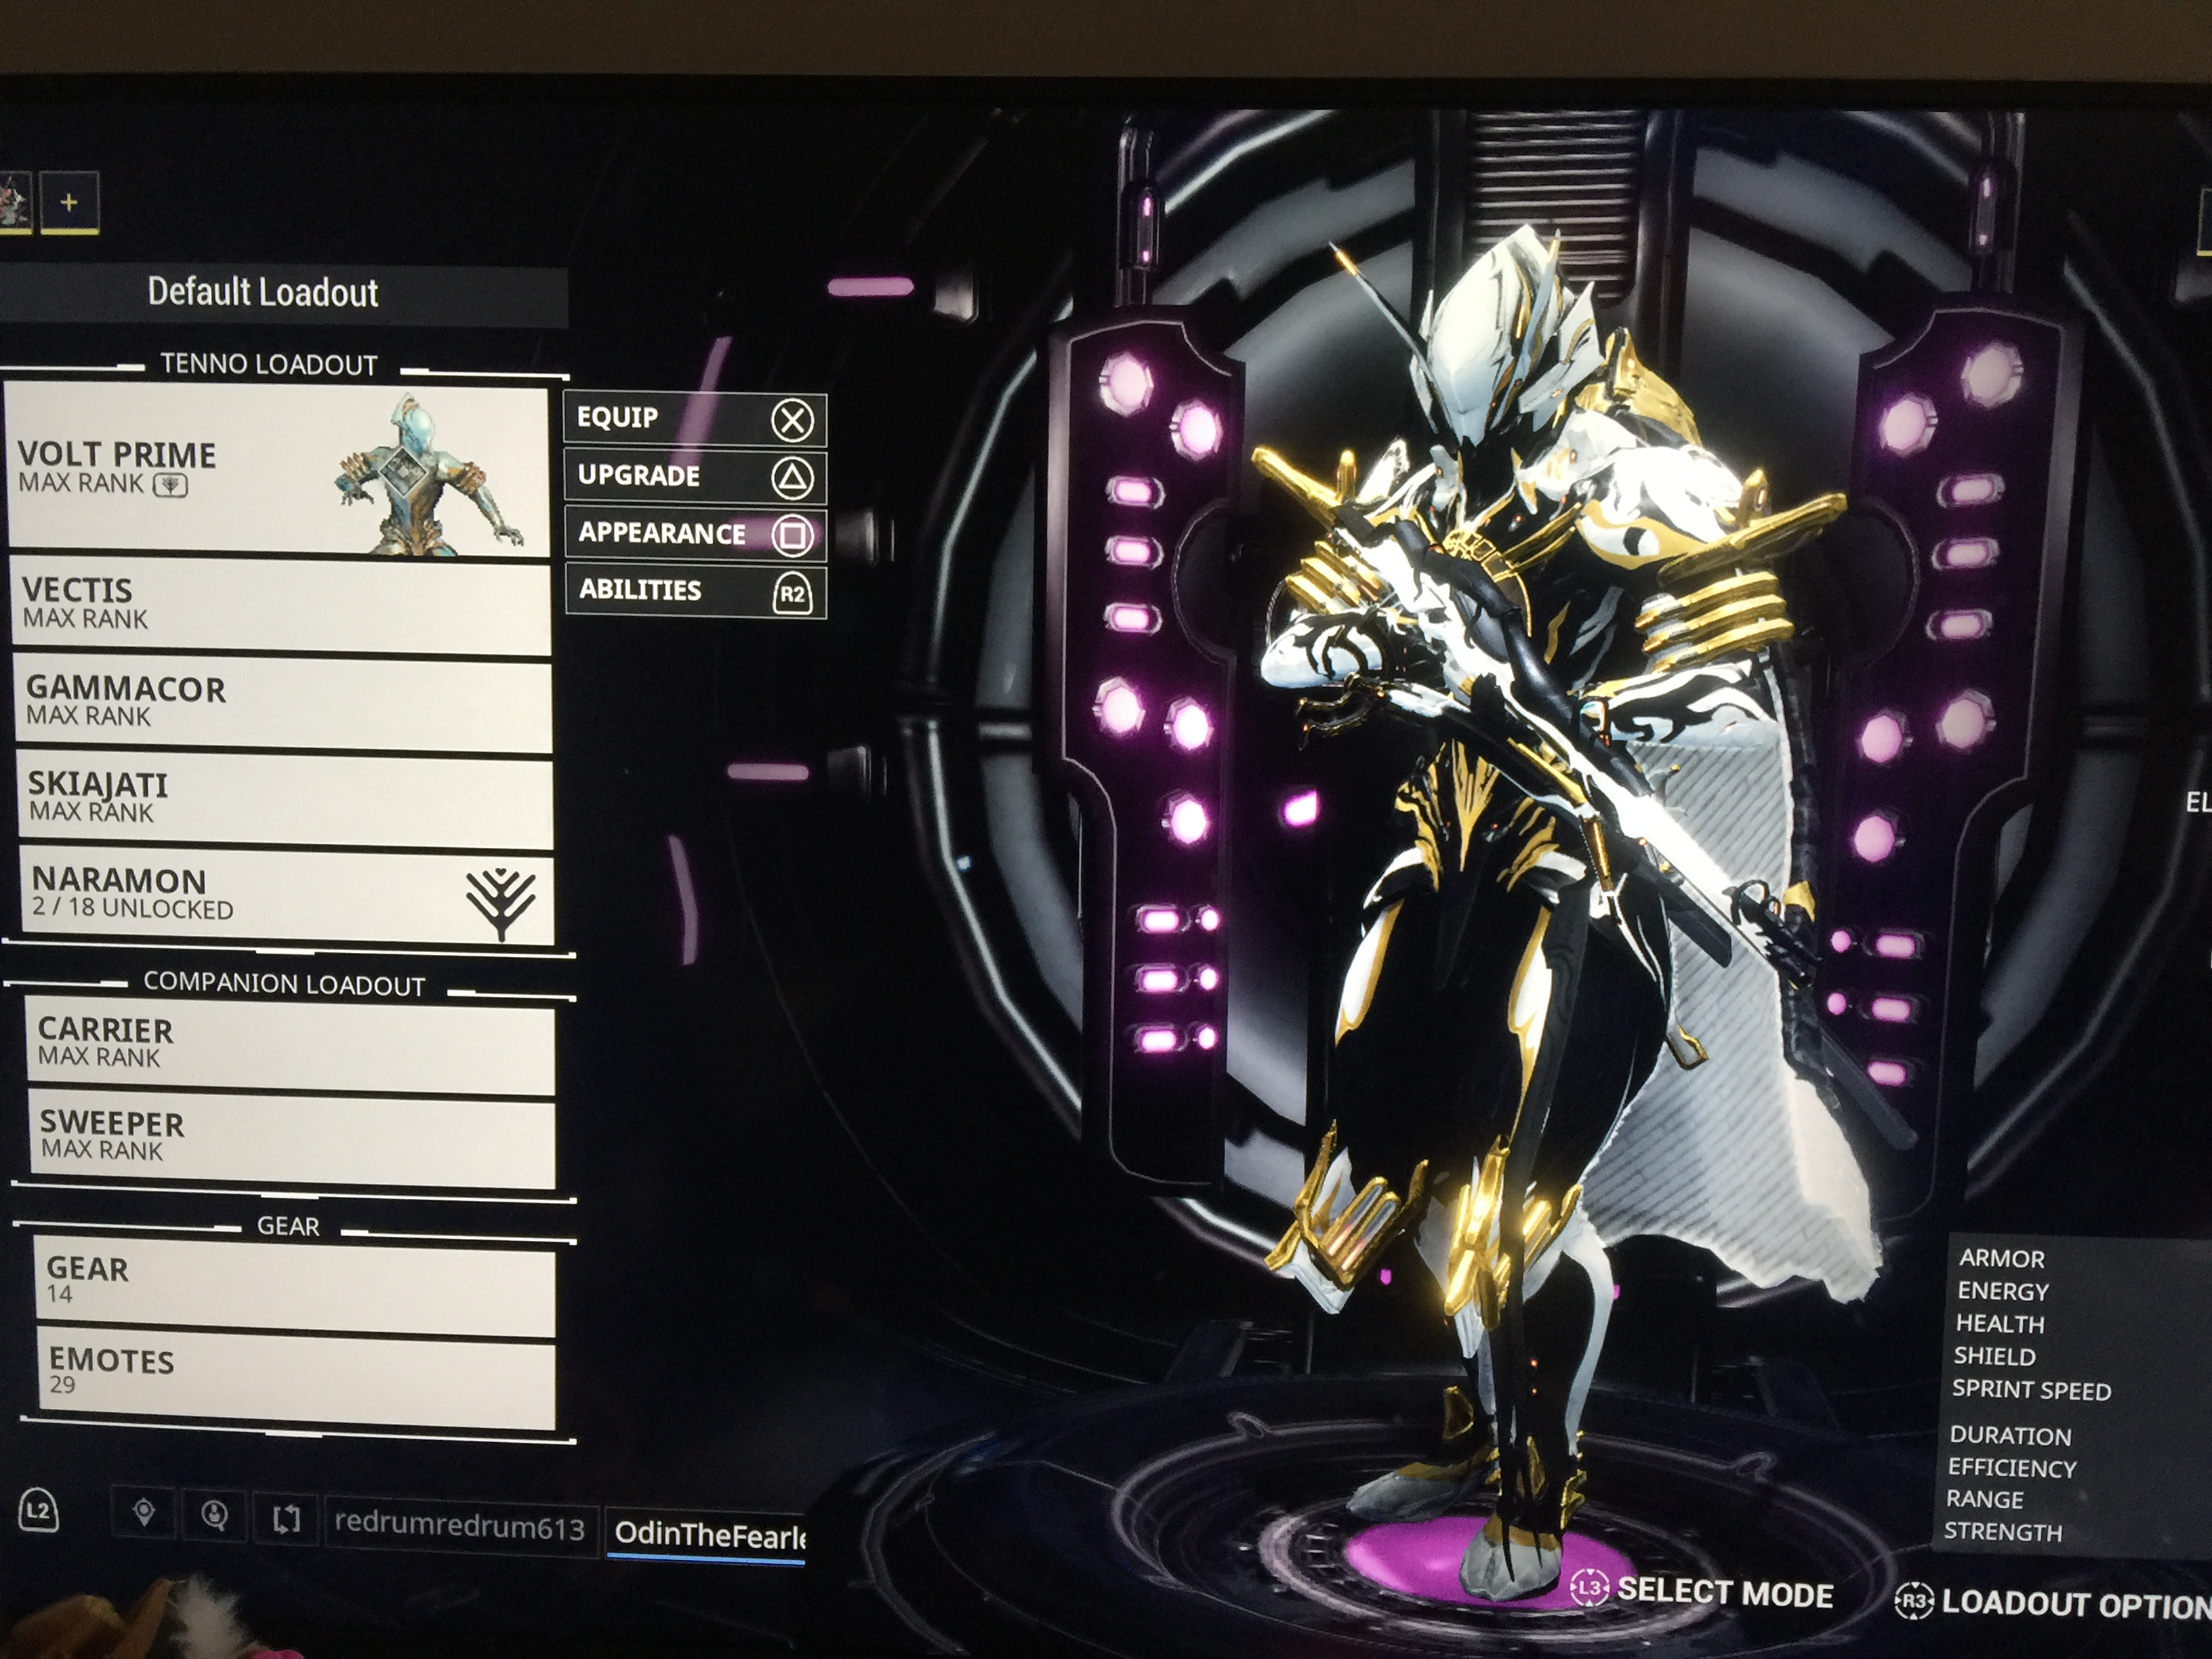 Show me your fashion frame for Volt/volt prime! Here's mine: